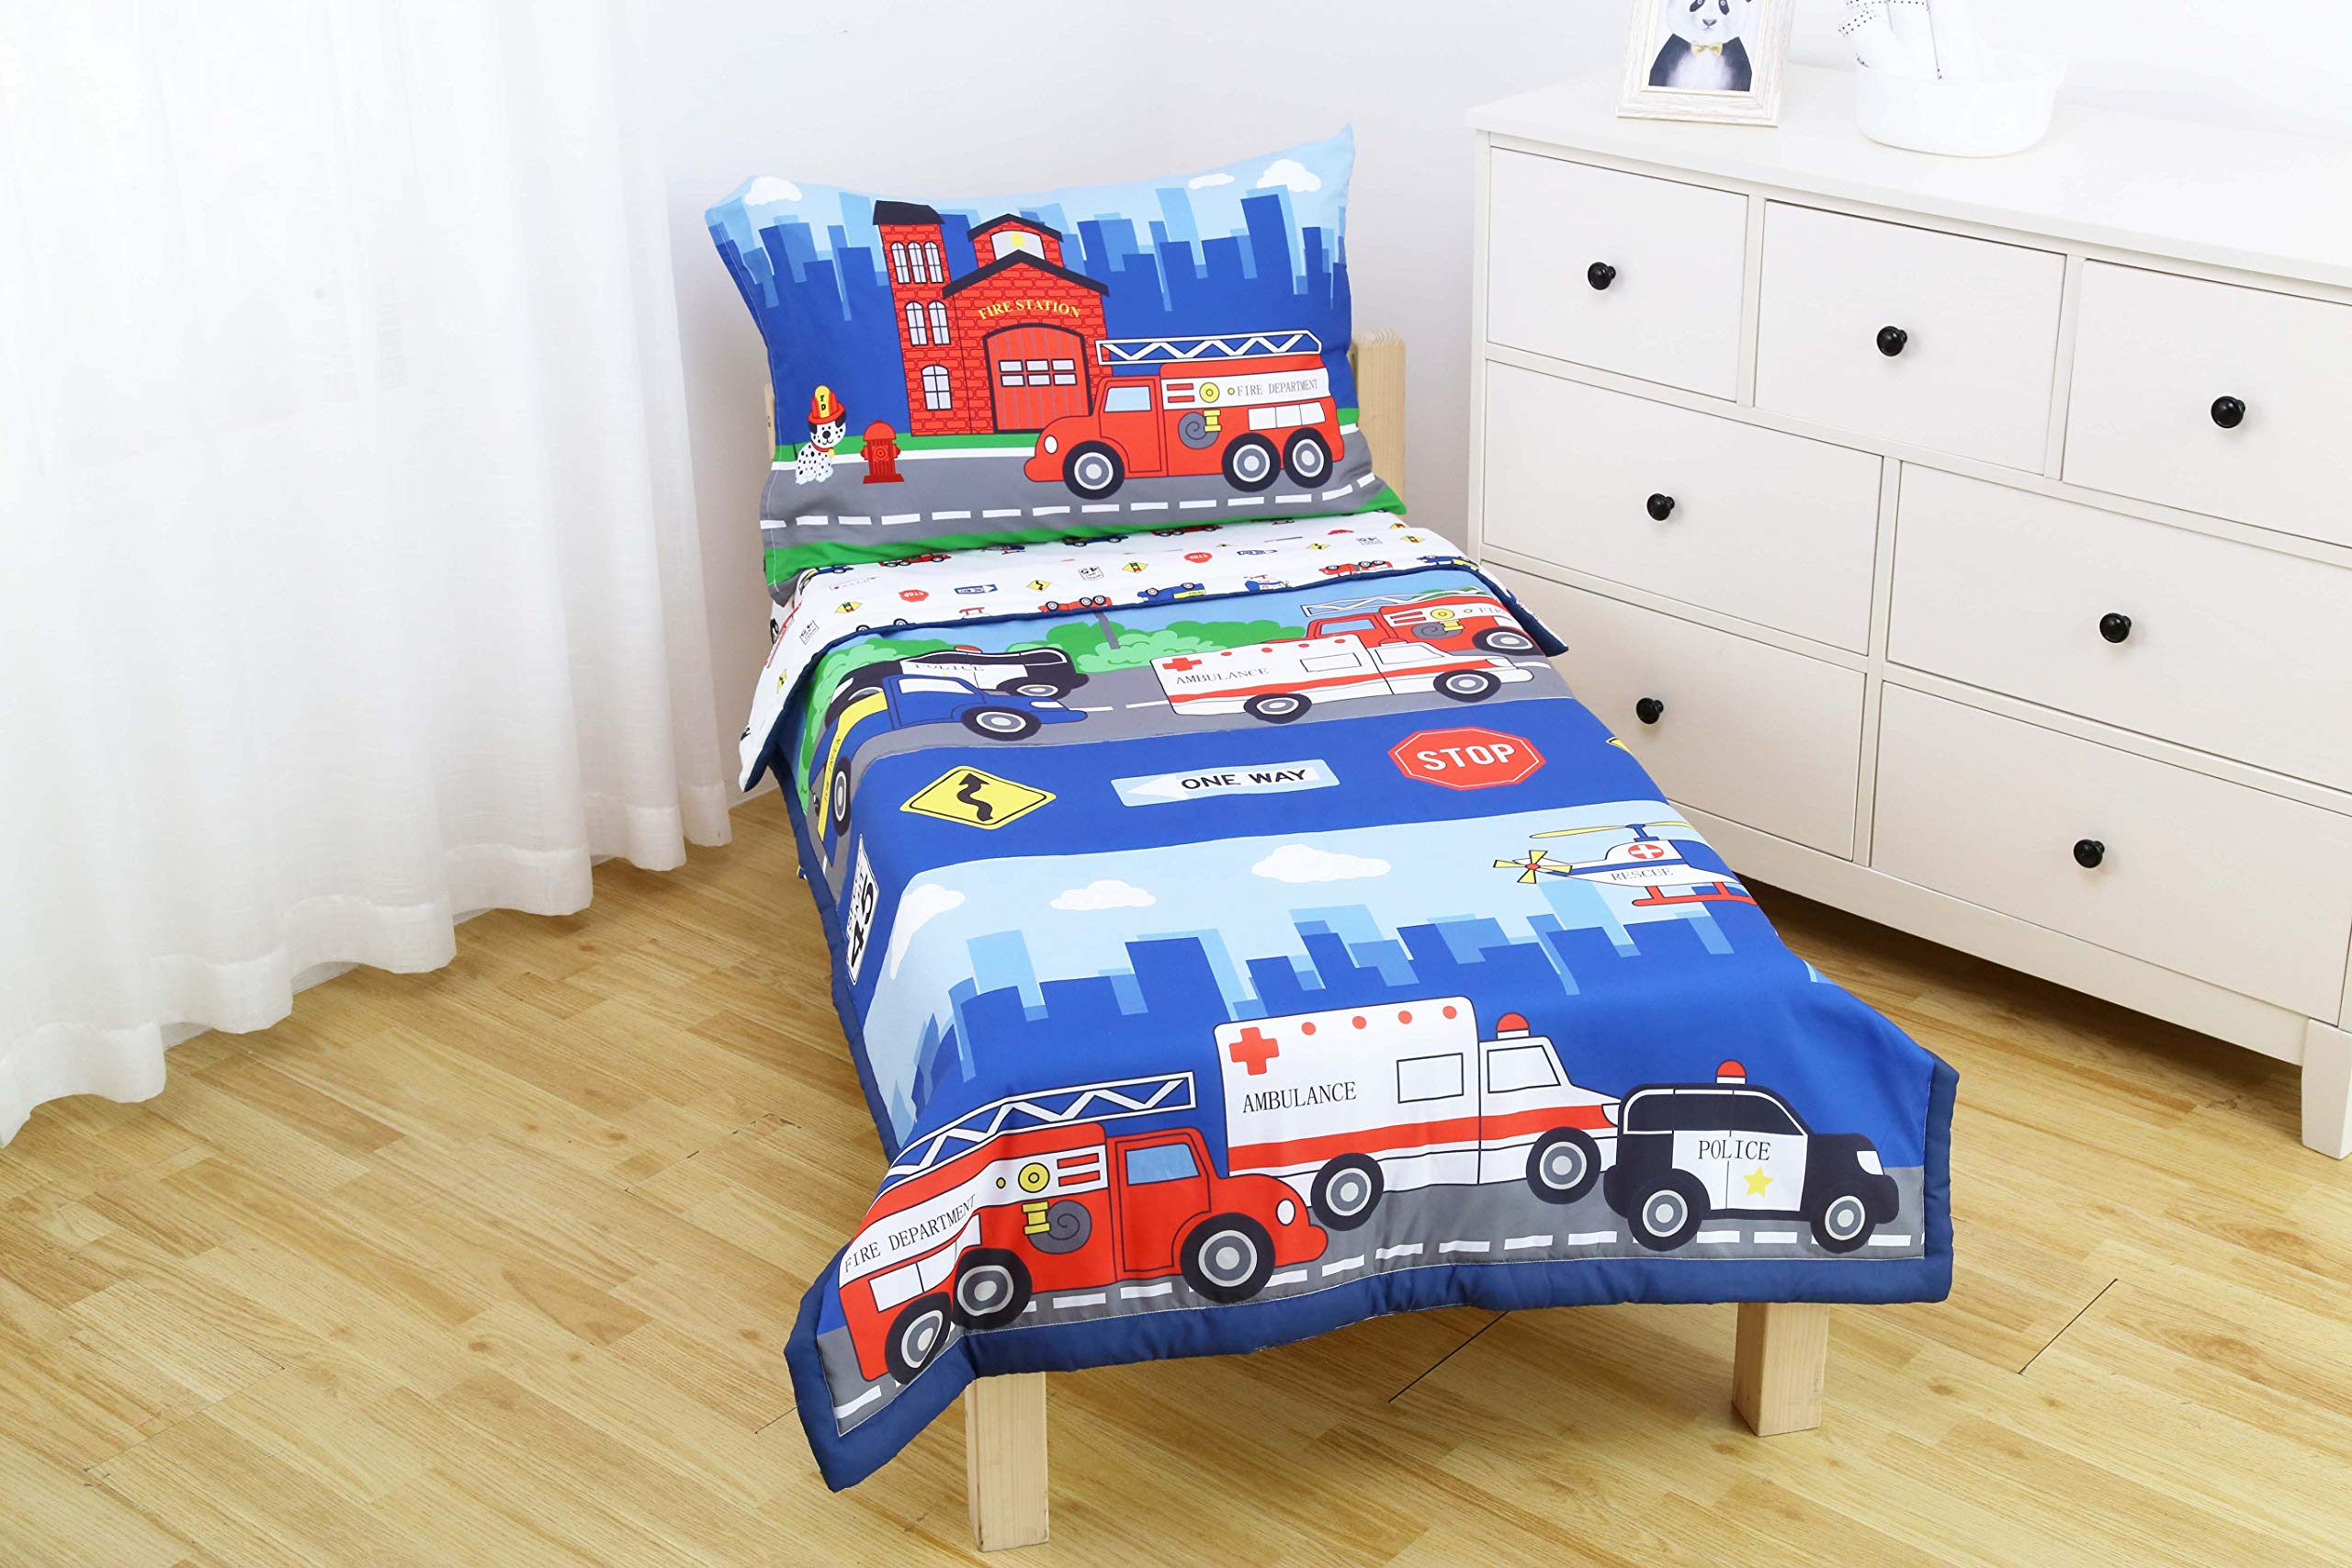 Everyday Kids 4 Piece Toddler Bedding Set -Fire and Police Rescue- Includes Comforter, Flat Sheet, Fitted Sheet and Reversible Pillowcase by Everyday